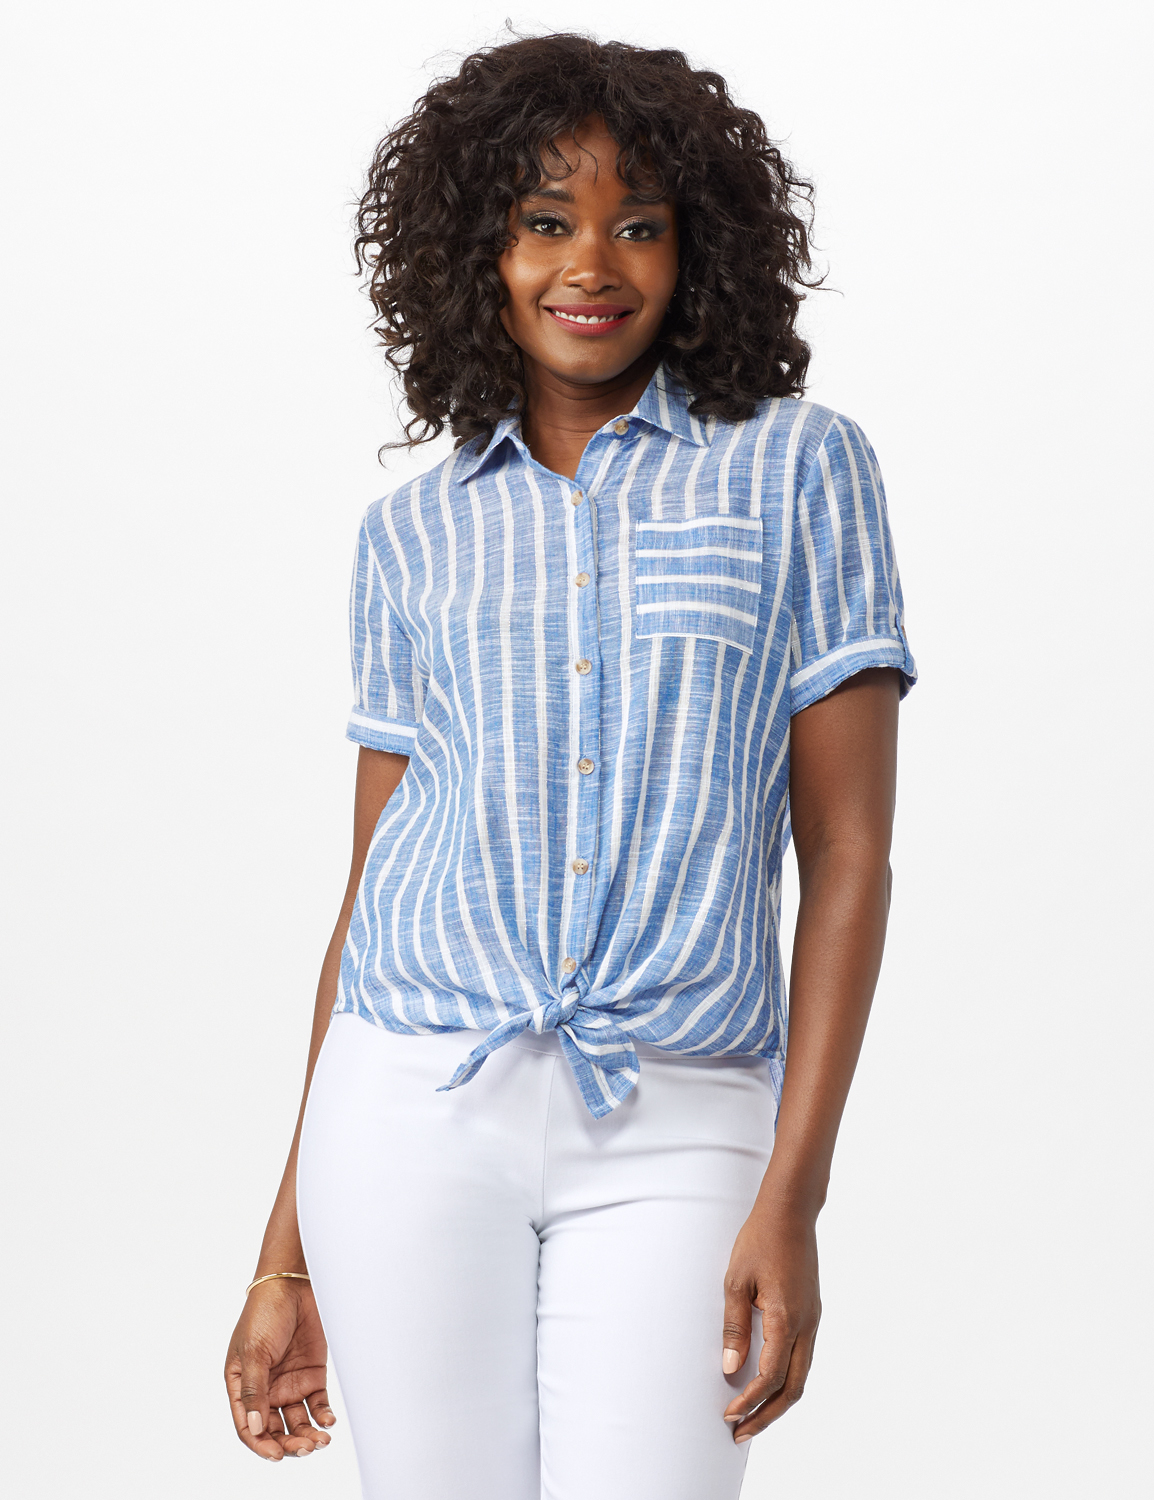 Dressbarn Lurex Stripe 1 Pocket Shirt - Misses -Blue - Front